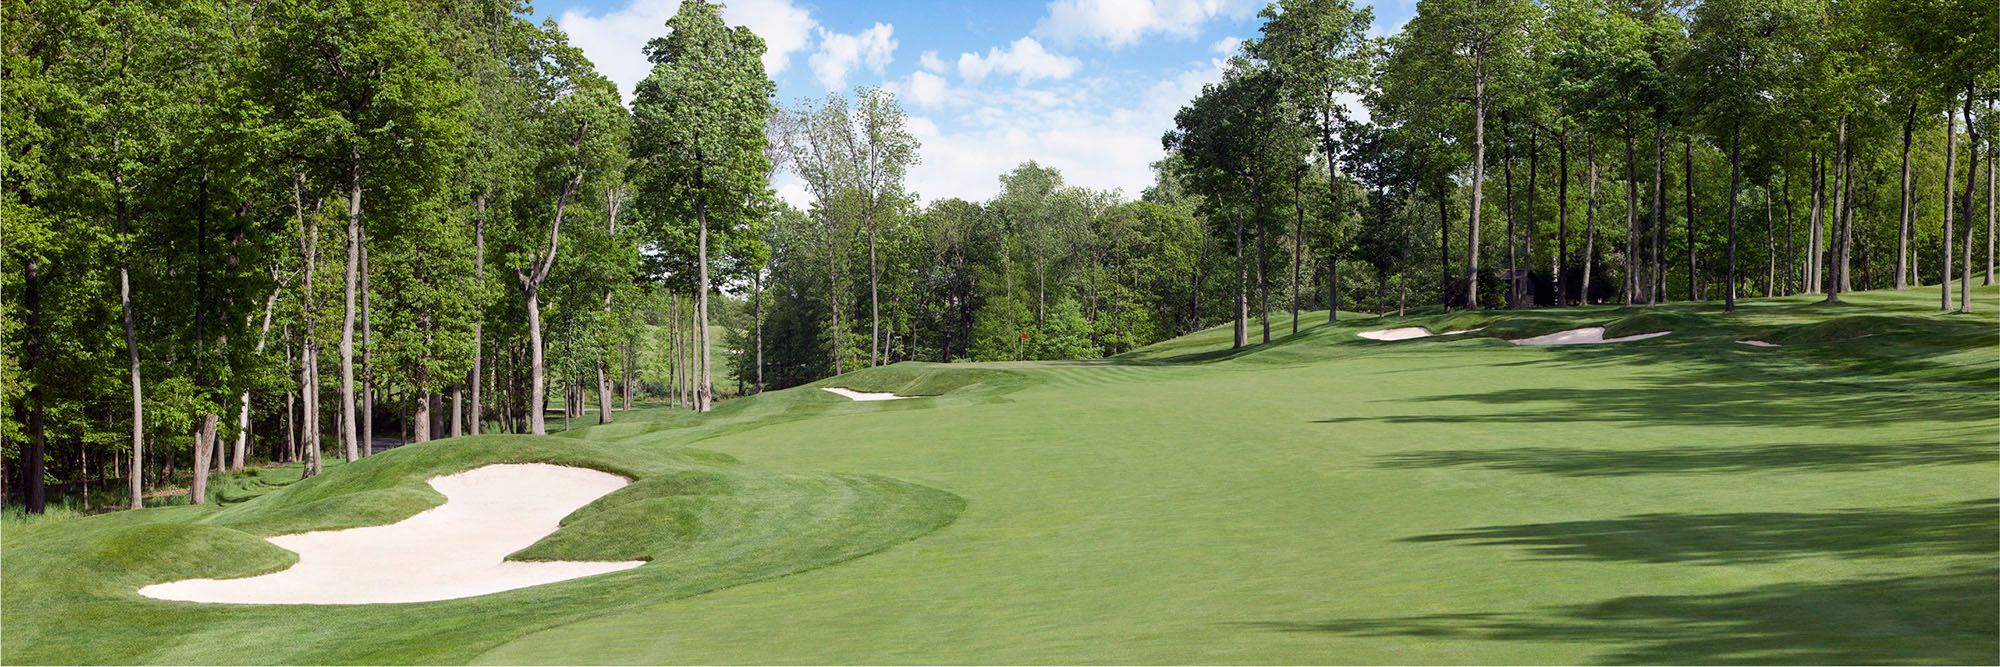 Golf Course Image - New Jersey National Golf Club No. 16